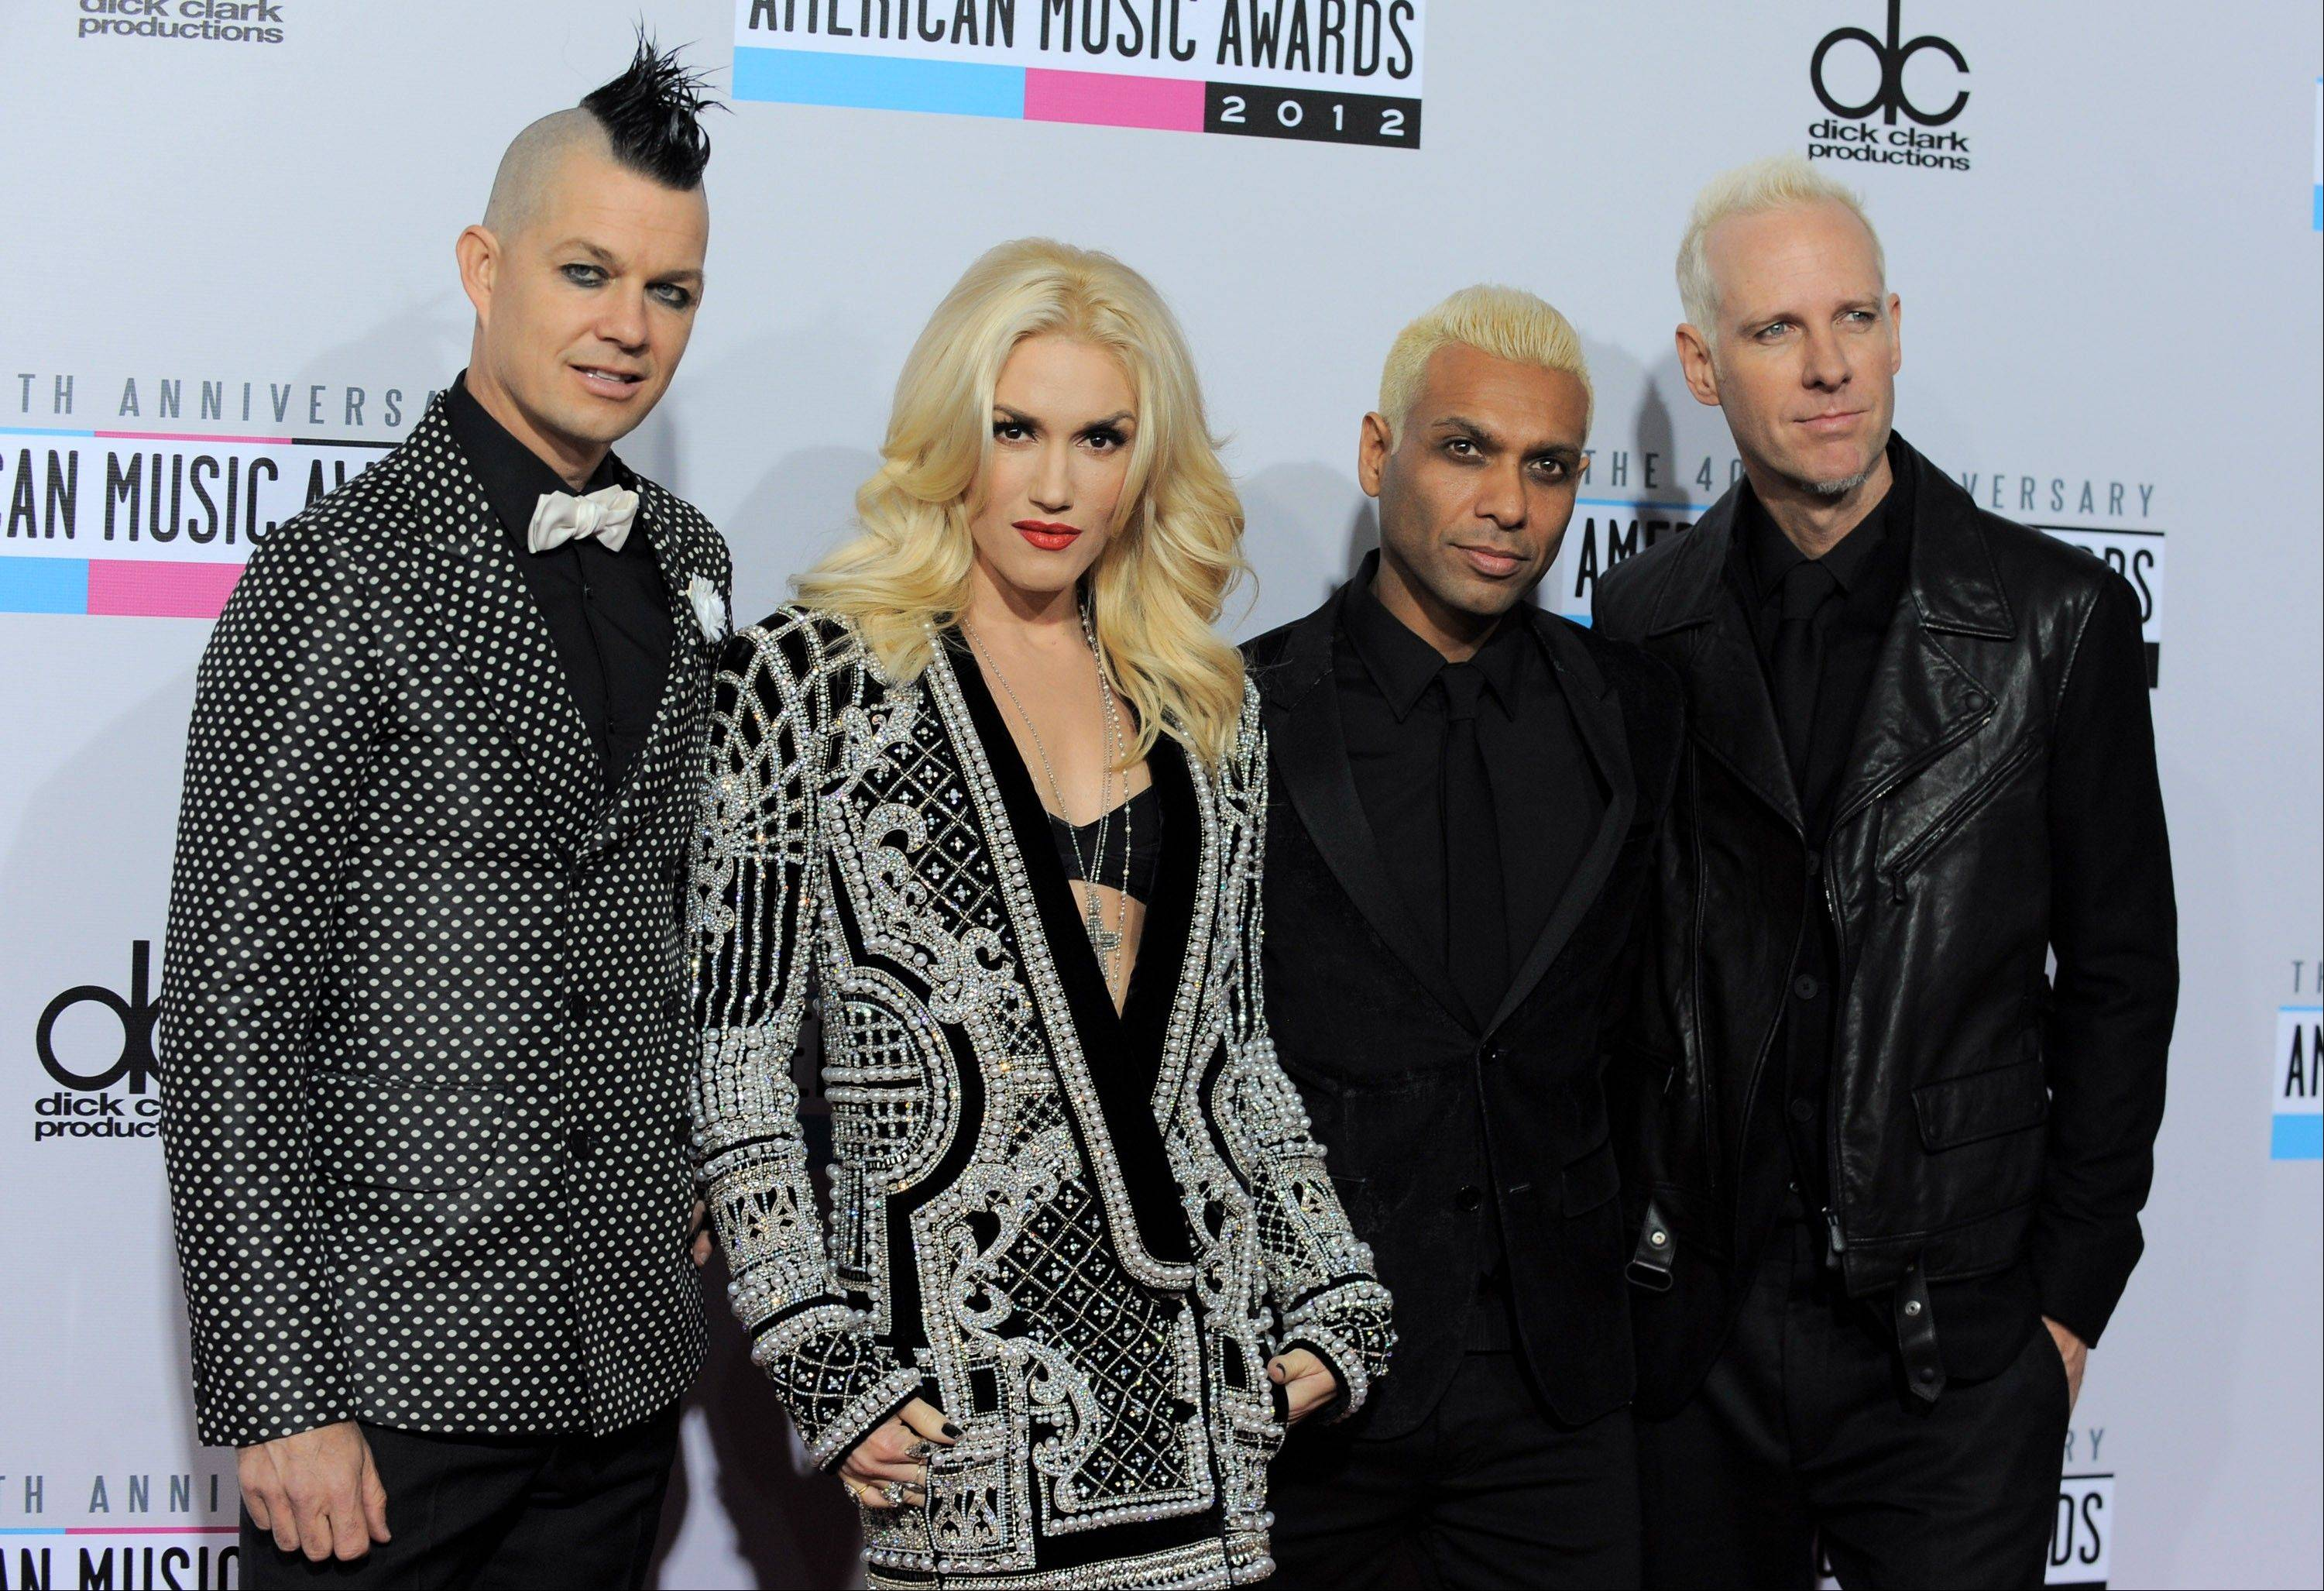 Musical group No Doubt, from left, Adrian Young, Gwen Stefani, Tony Kanal and Tom Dumont arrive at the 40th Anniversary American Music Awards.